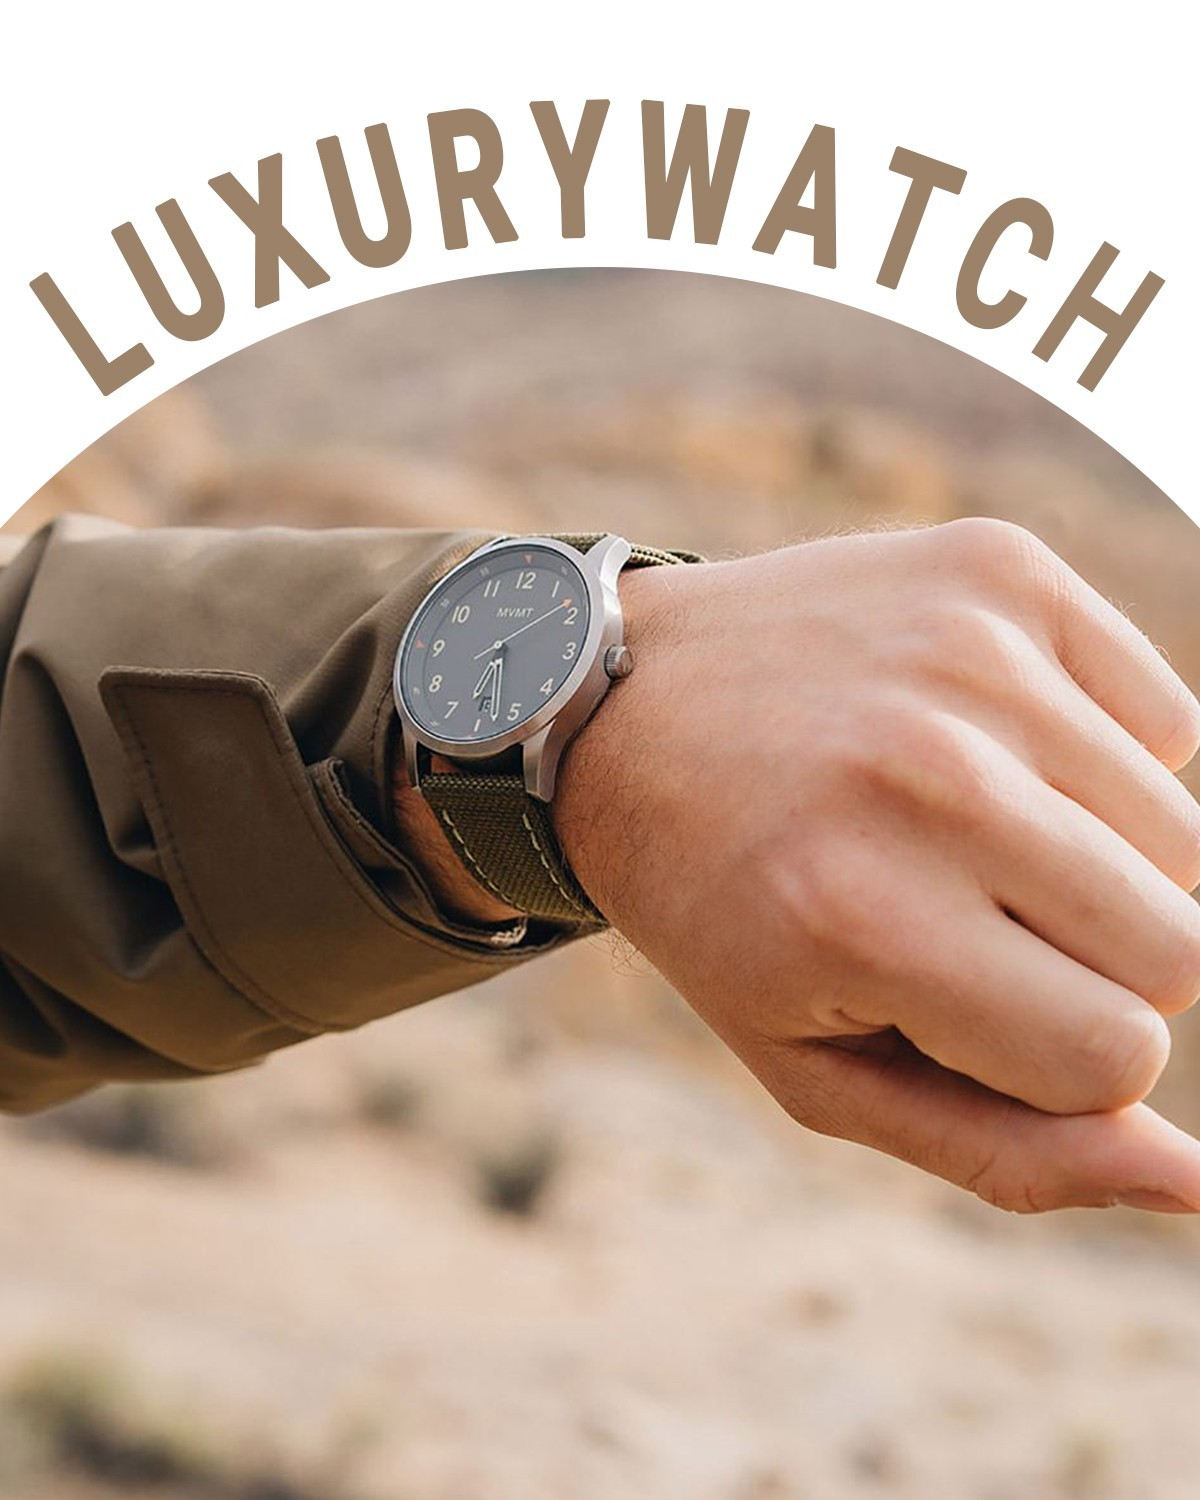 Choose a Luxury Watch That Suits You